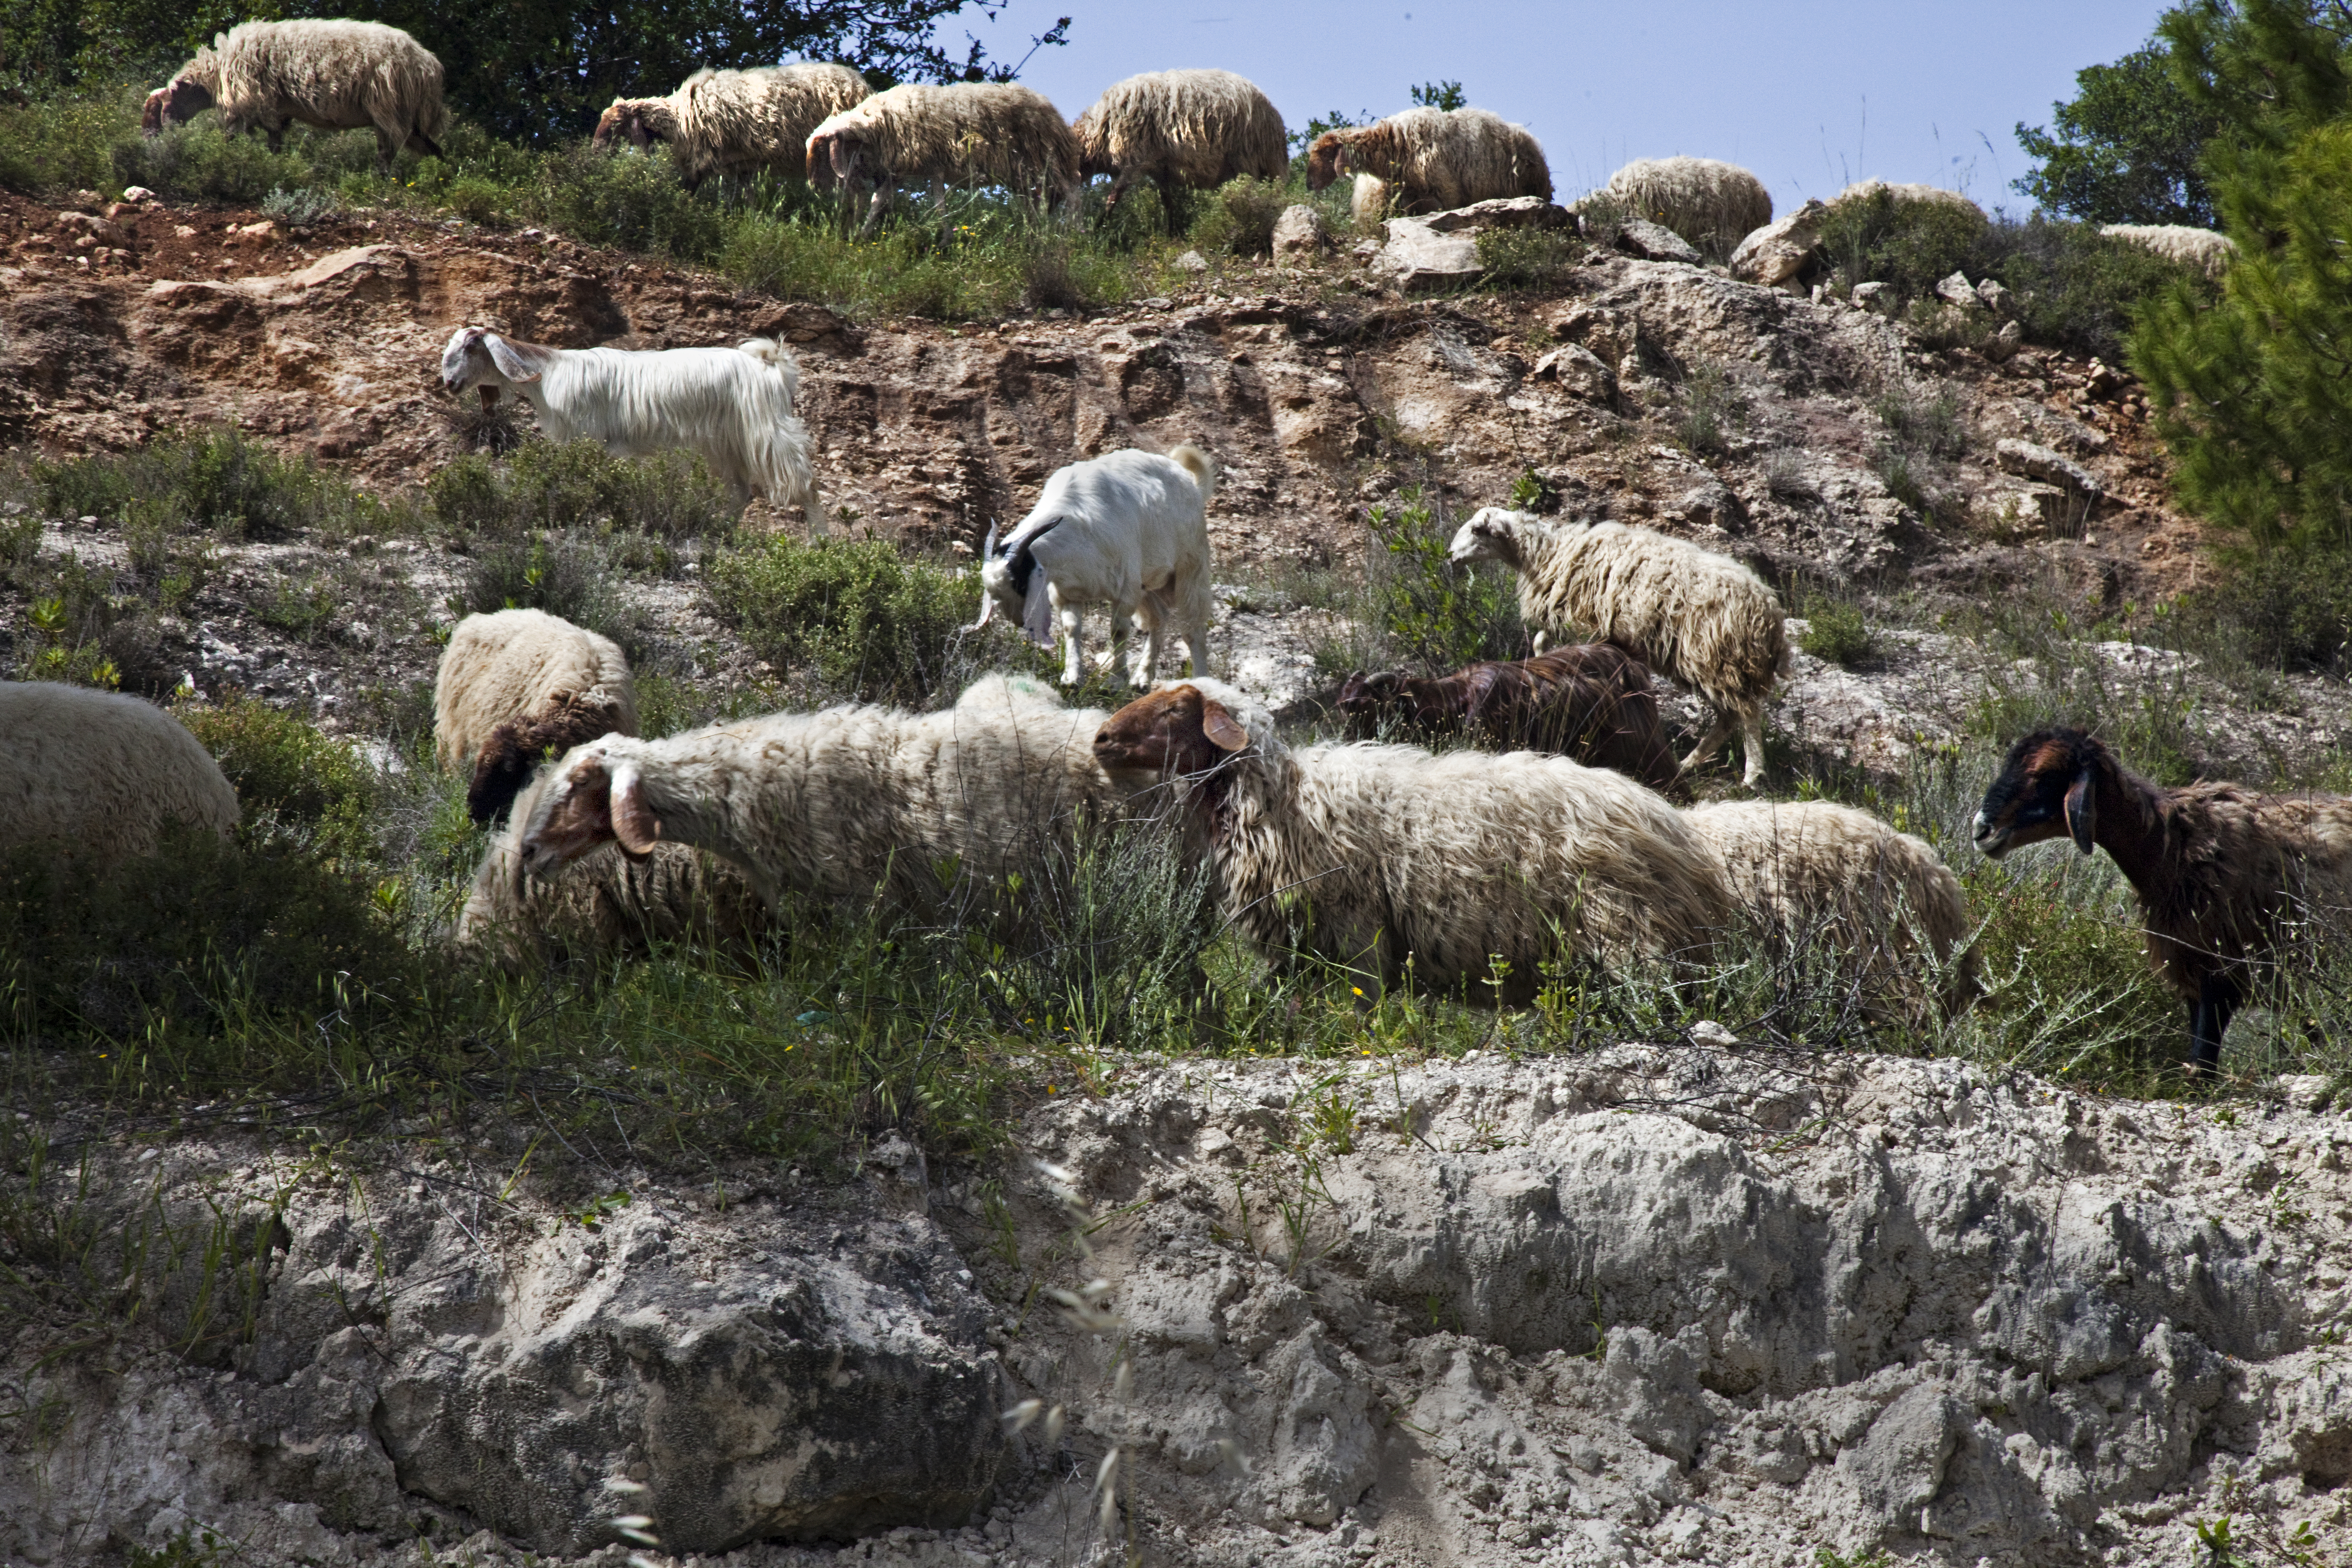 A photograph of sheep and goats.